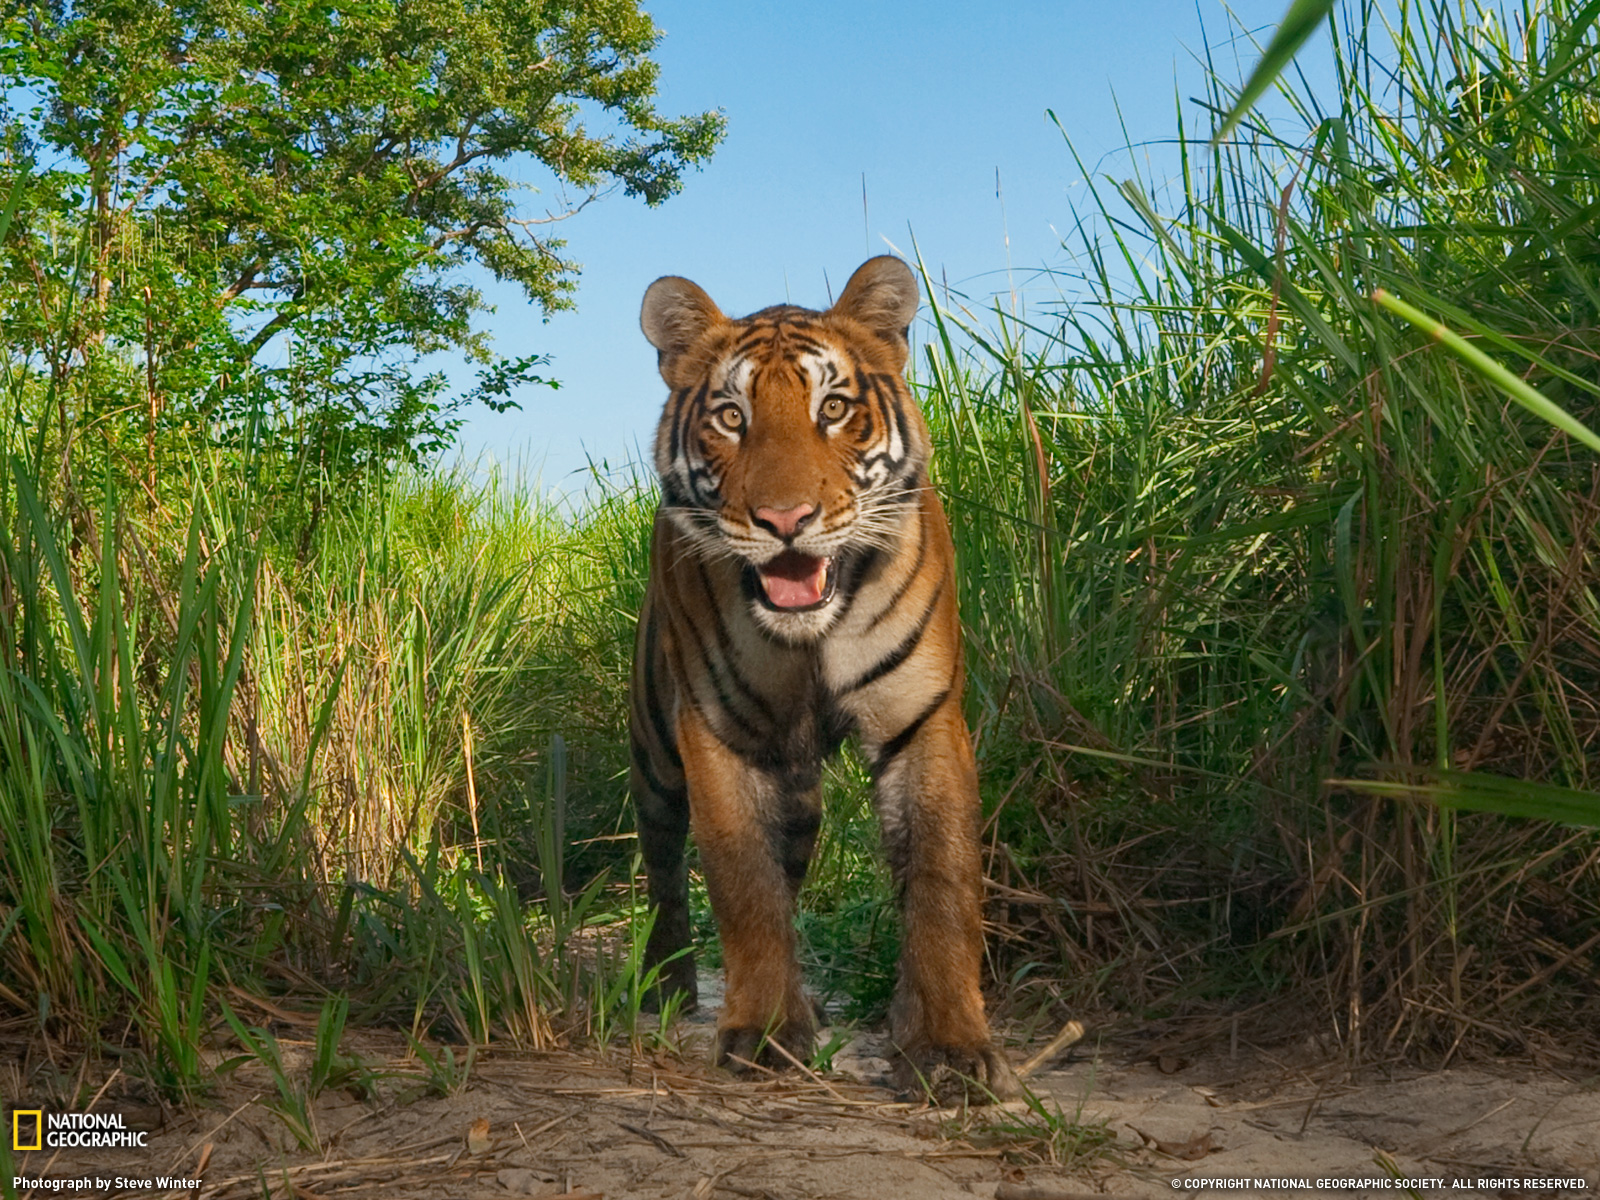 Nat geo wild hd wallpapers full hd pictures - National geographic wild wallpapers ...